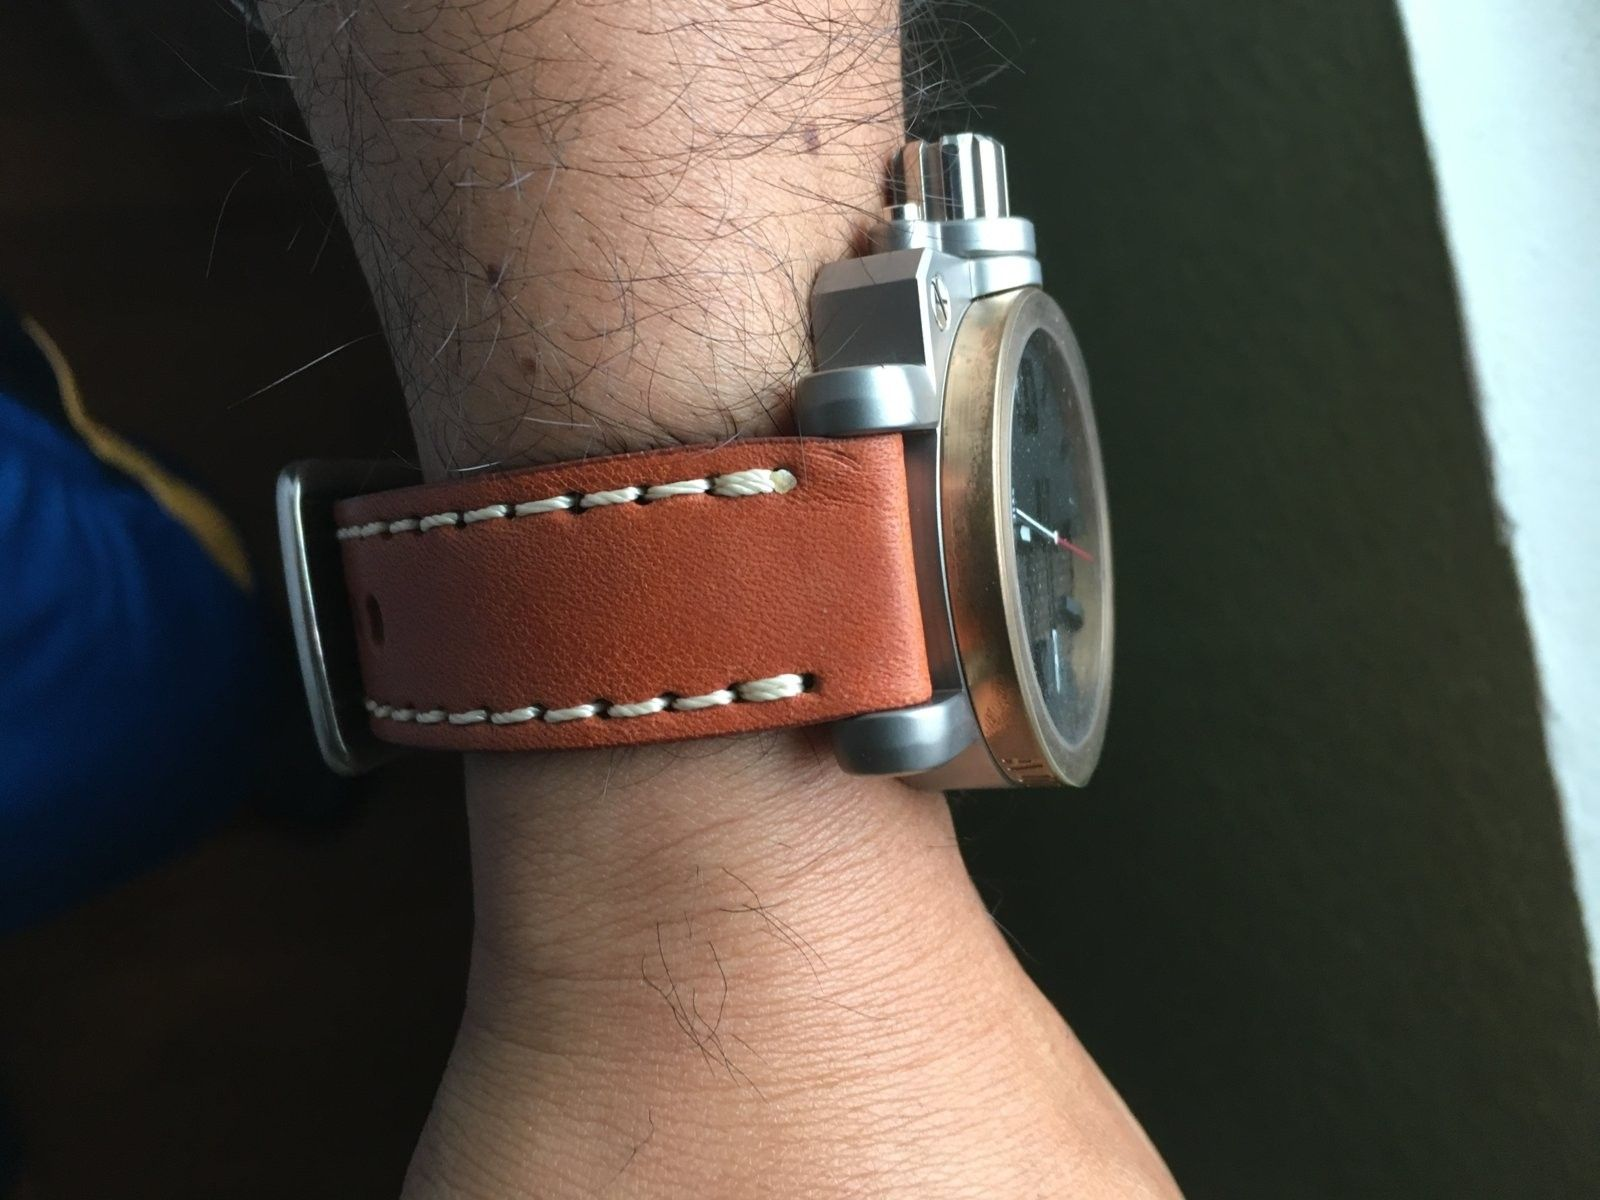 New strap...  Yes or no? - image.jpeg